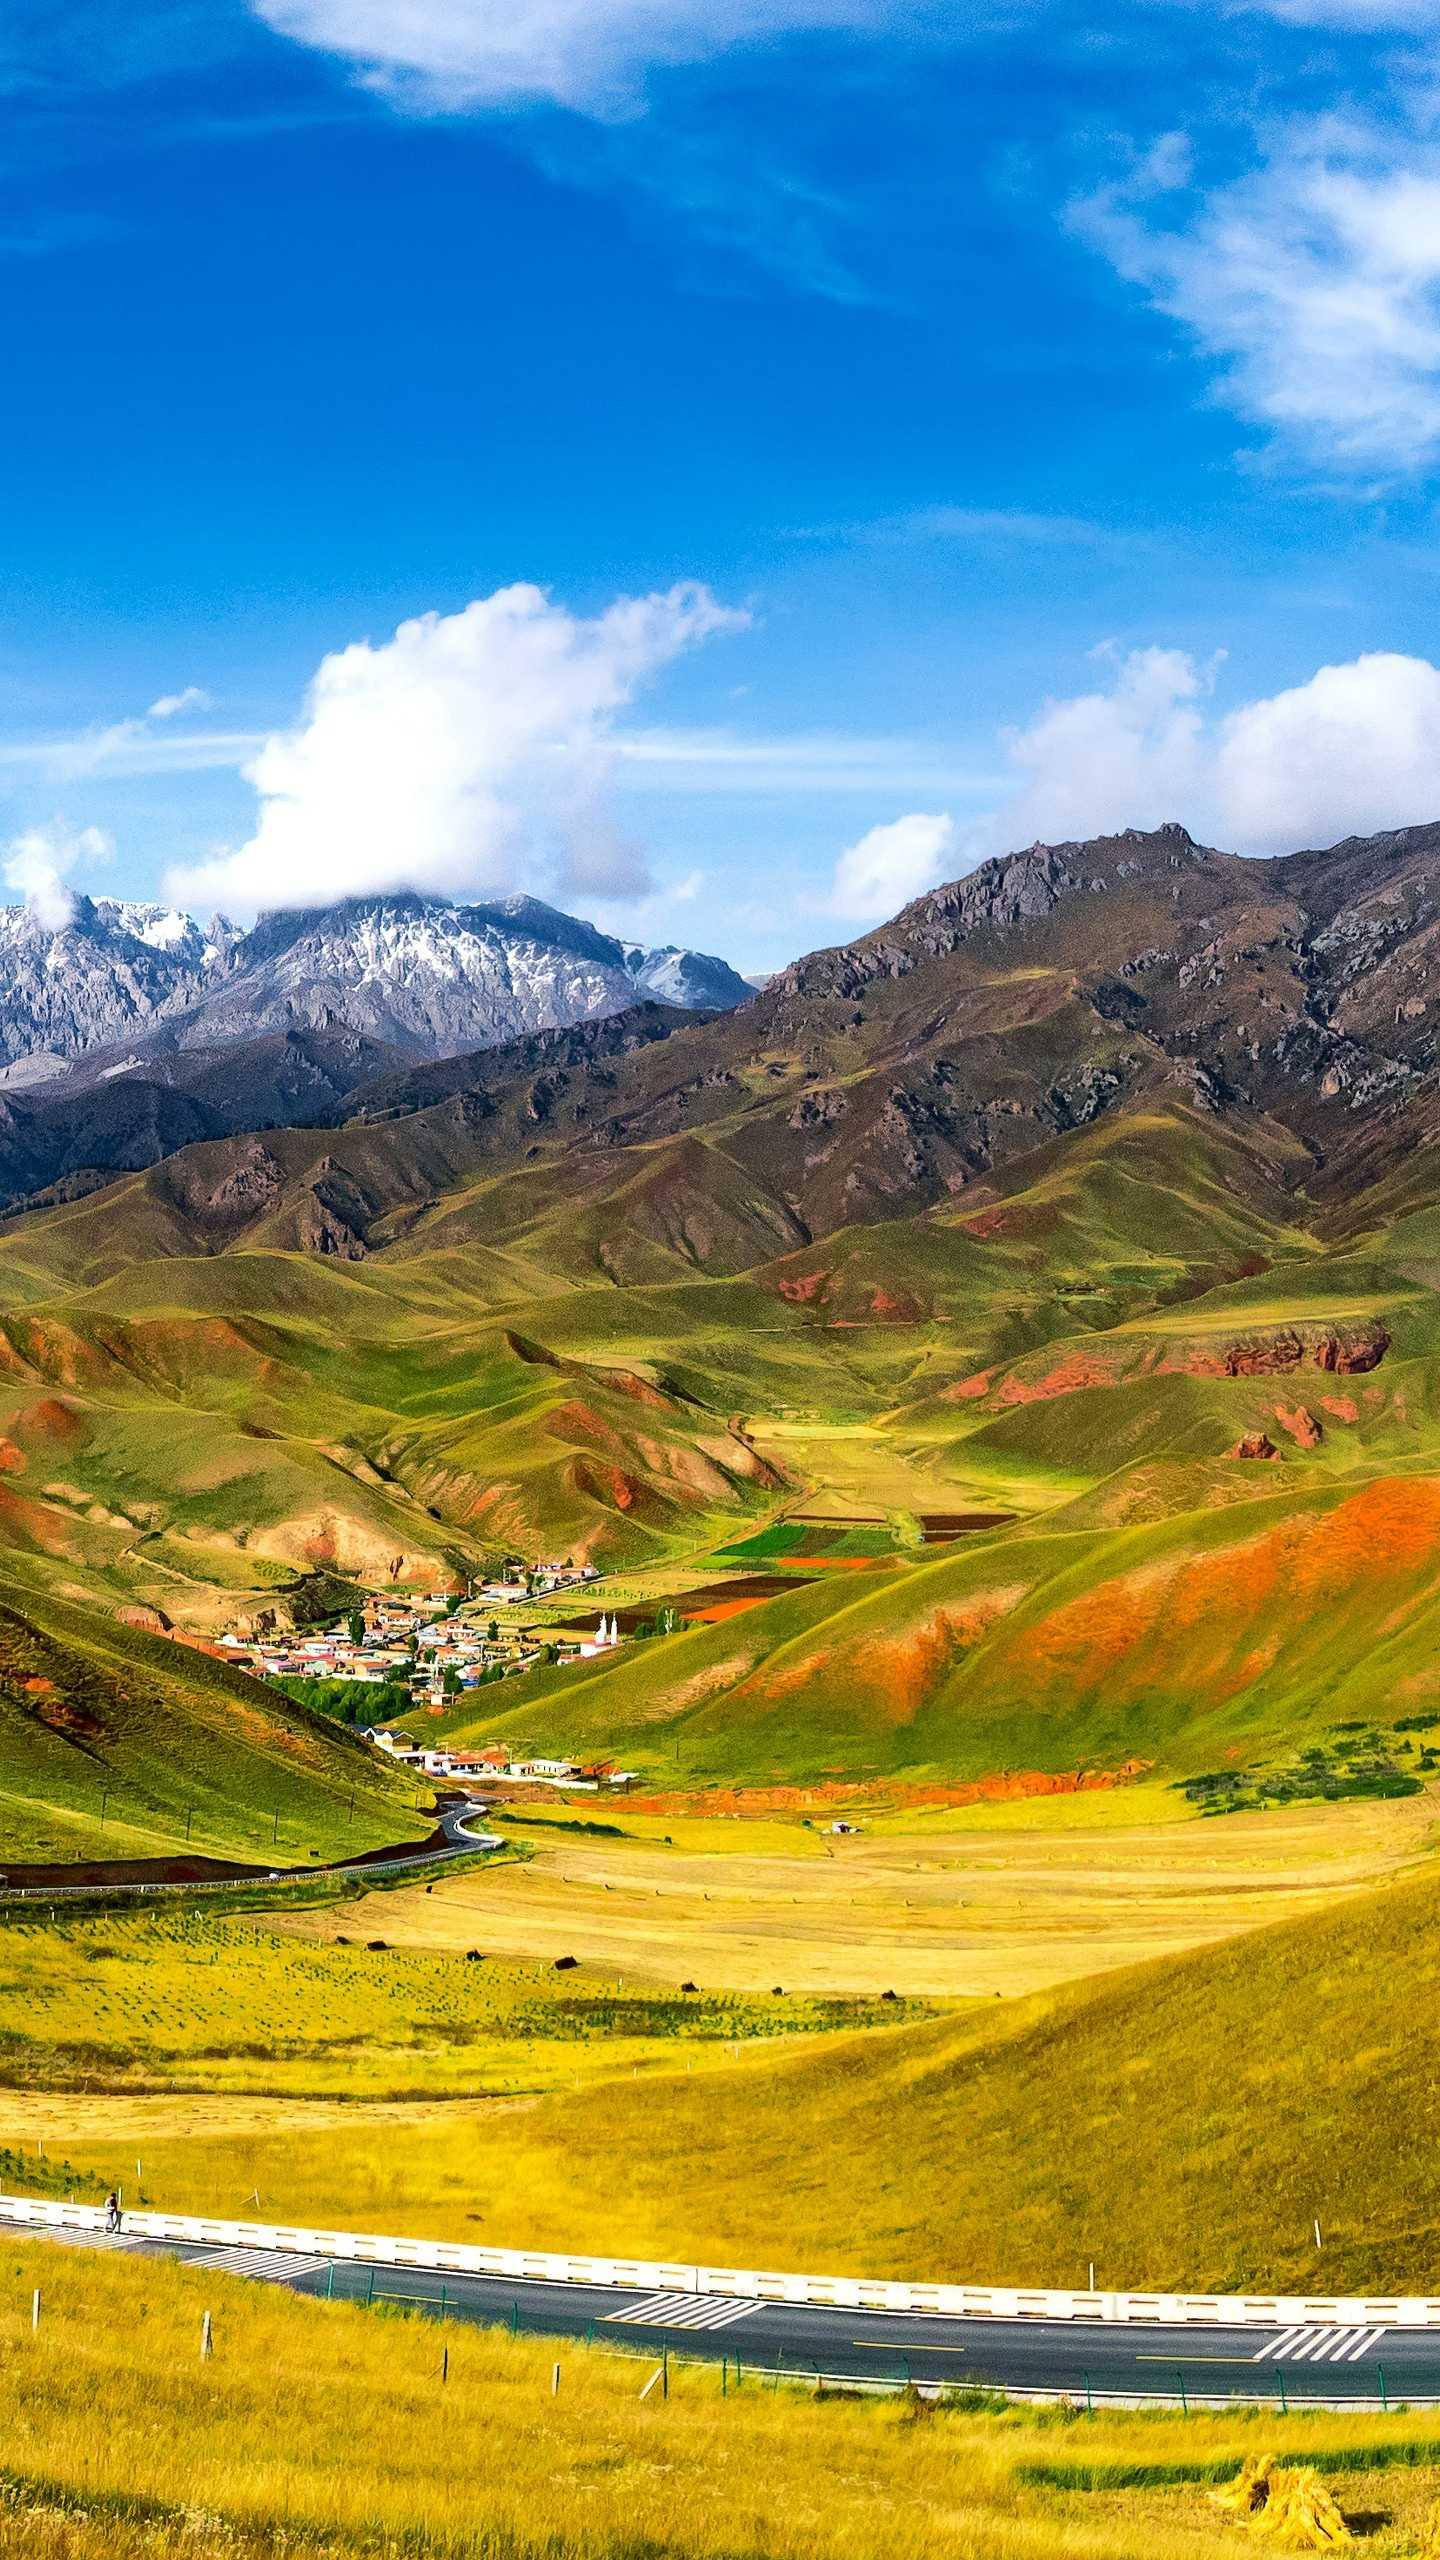 Zall Mountain. Zall Mountain is close to the Babao River and is across the river from the Shenshan Niushan Mountain in the Tibetan area. It is an amazing tourist attraction.